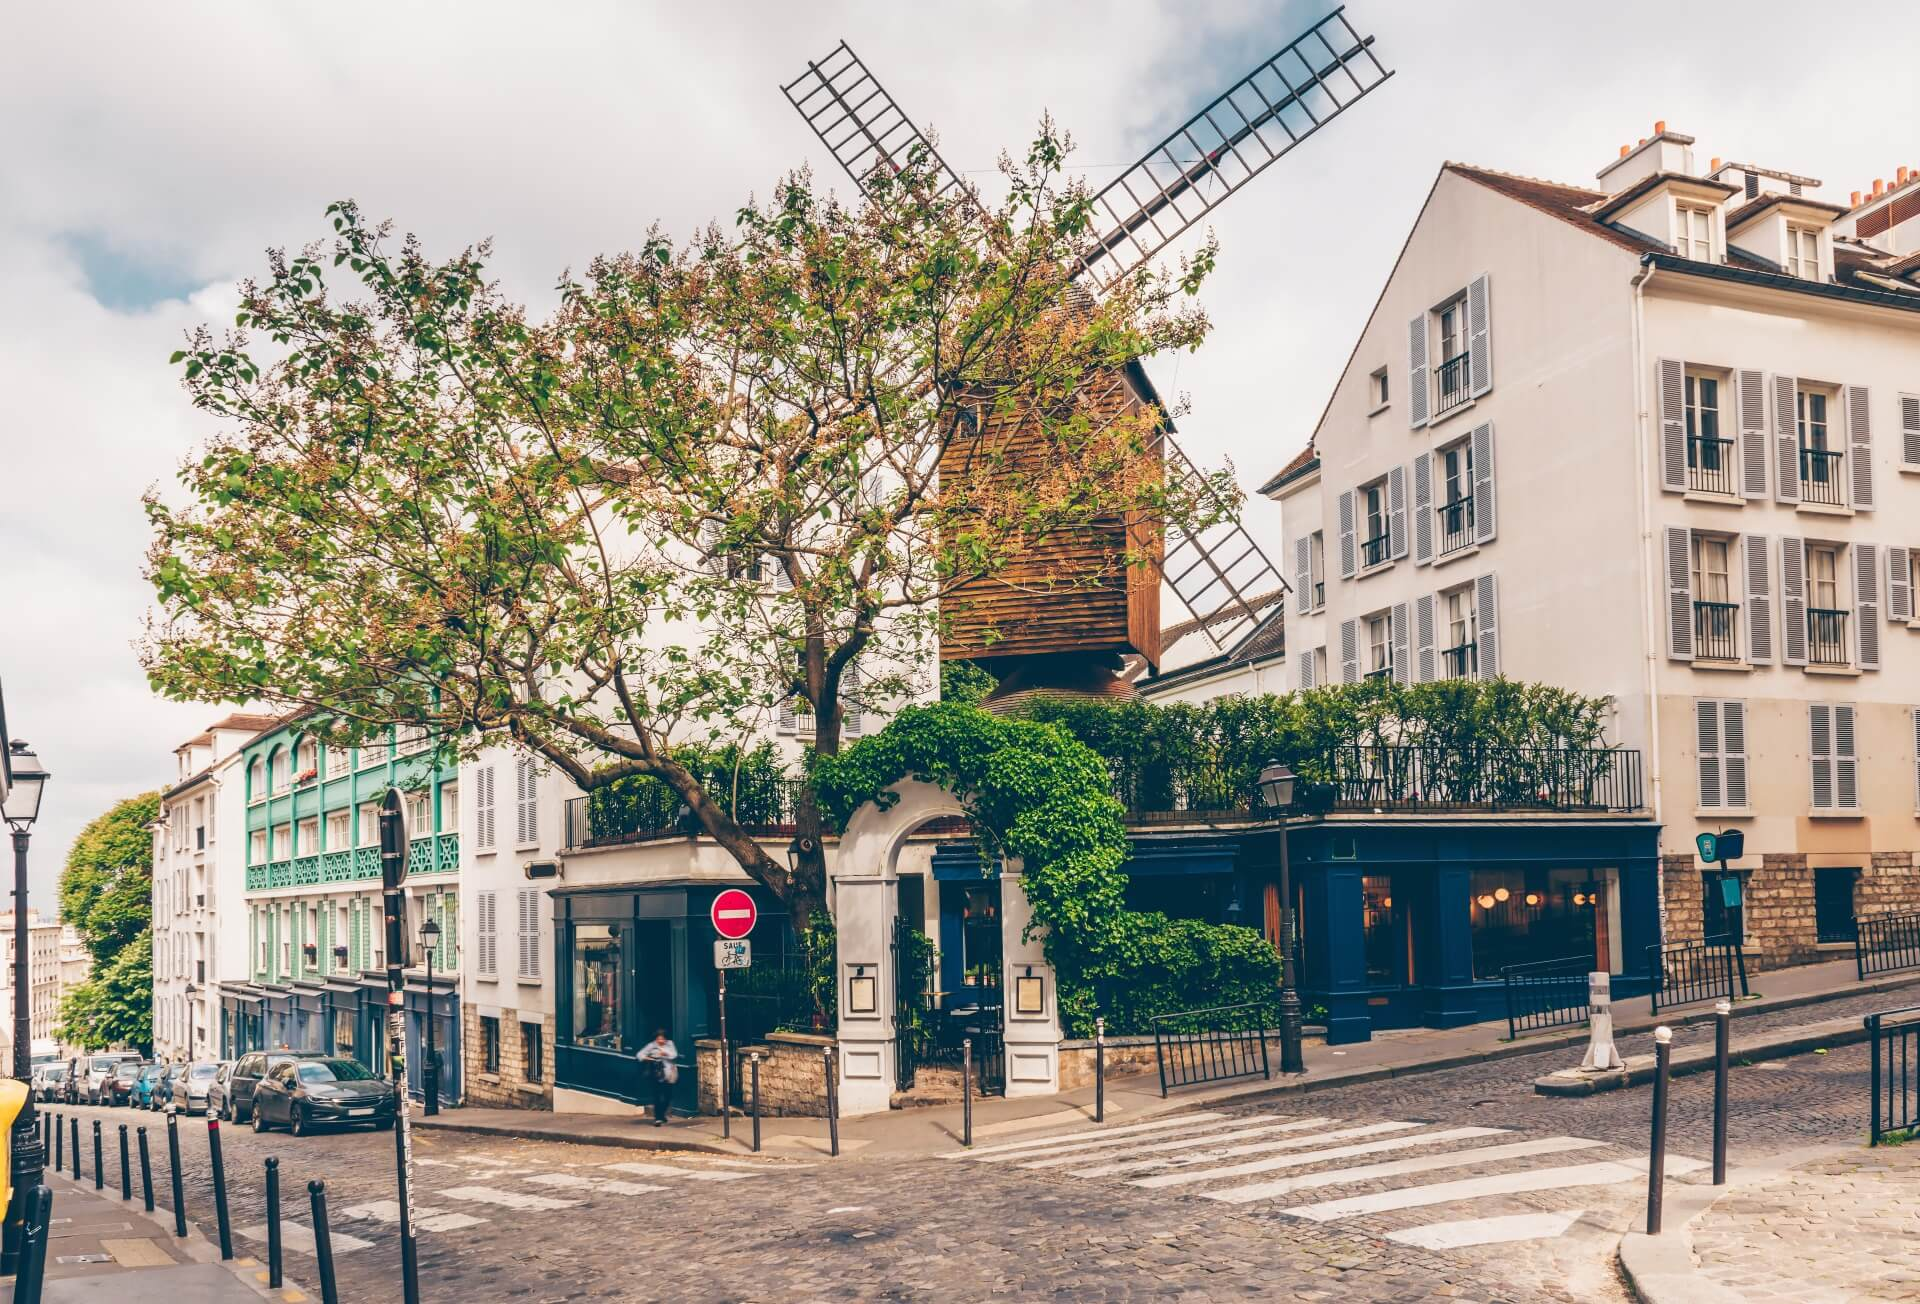 Mühle in Montmartre Paris